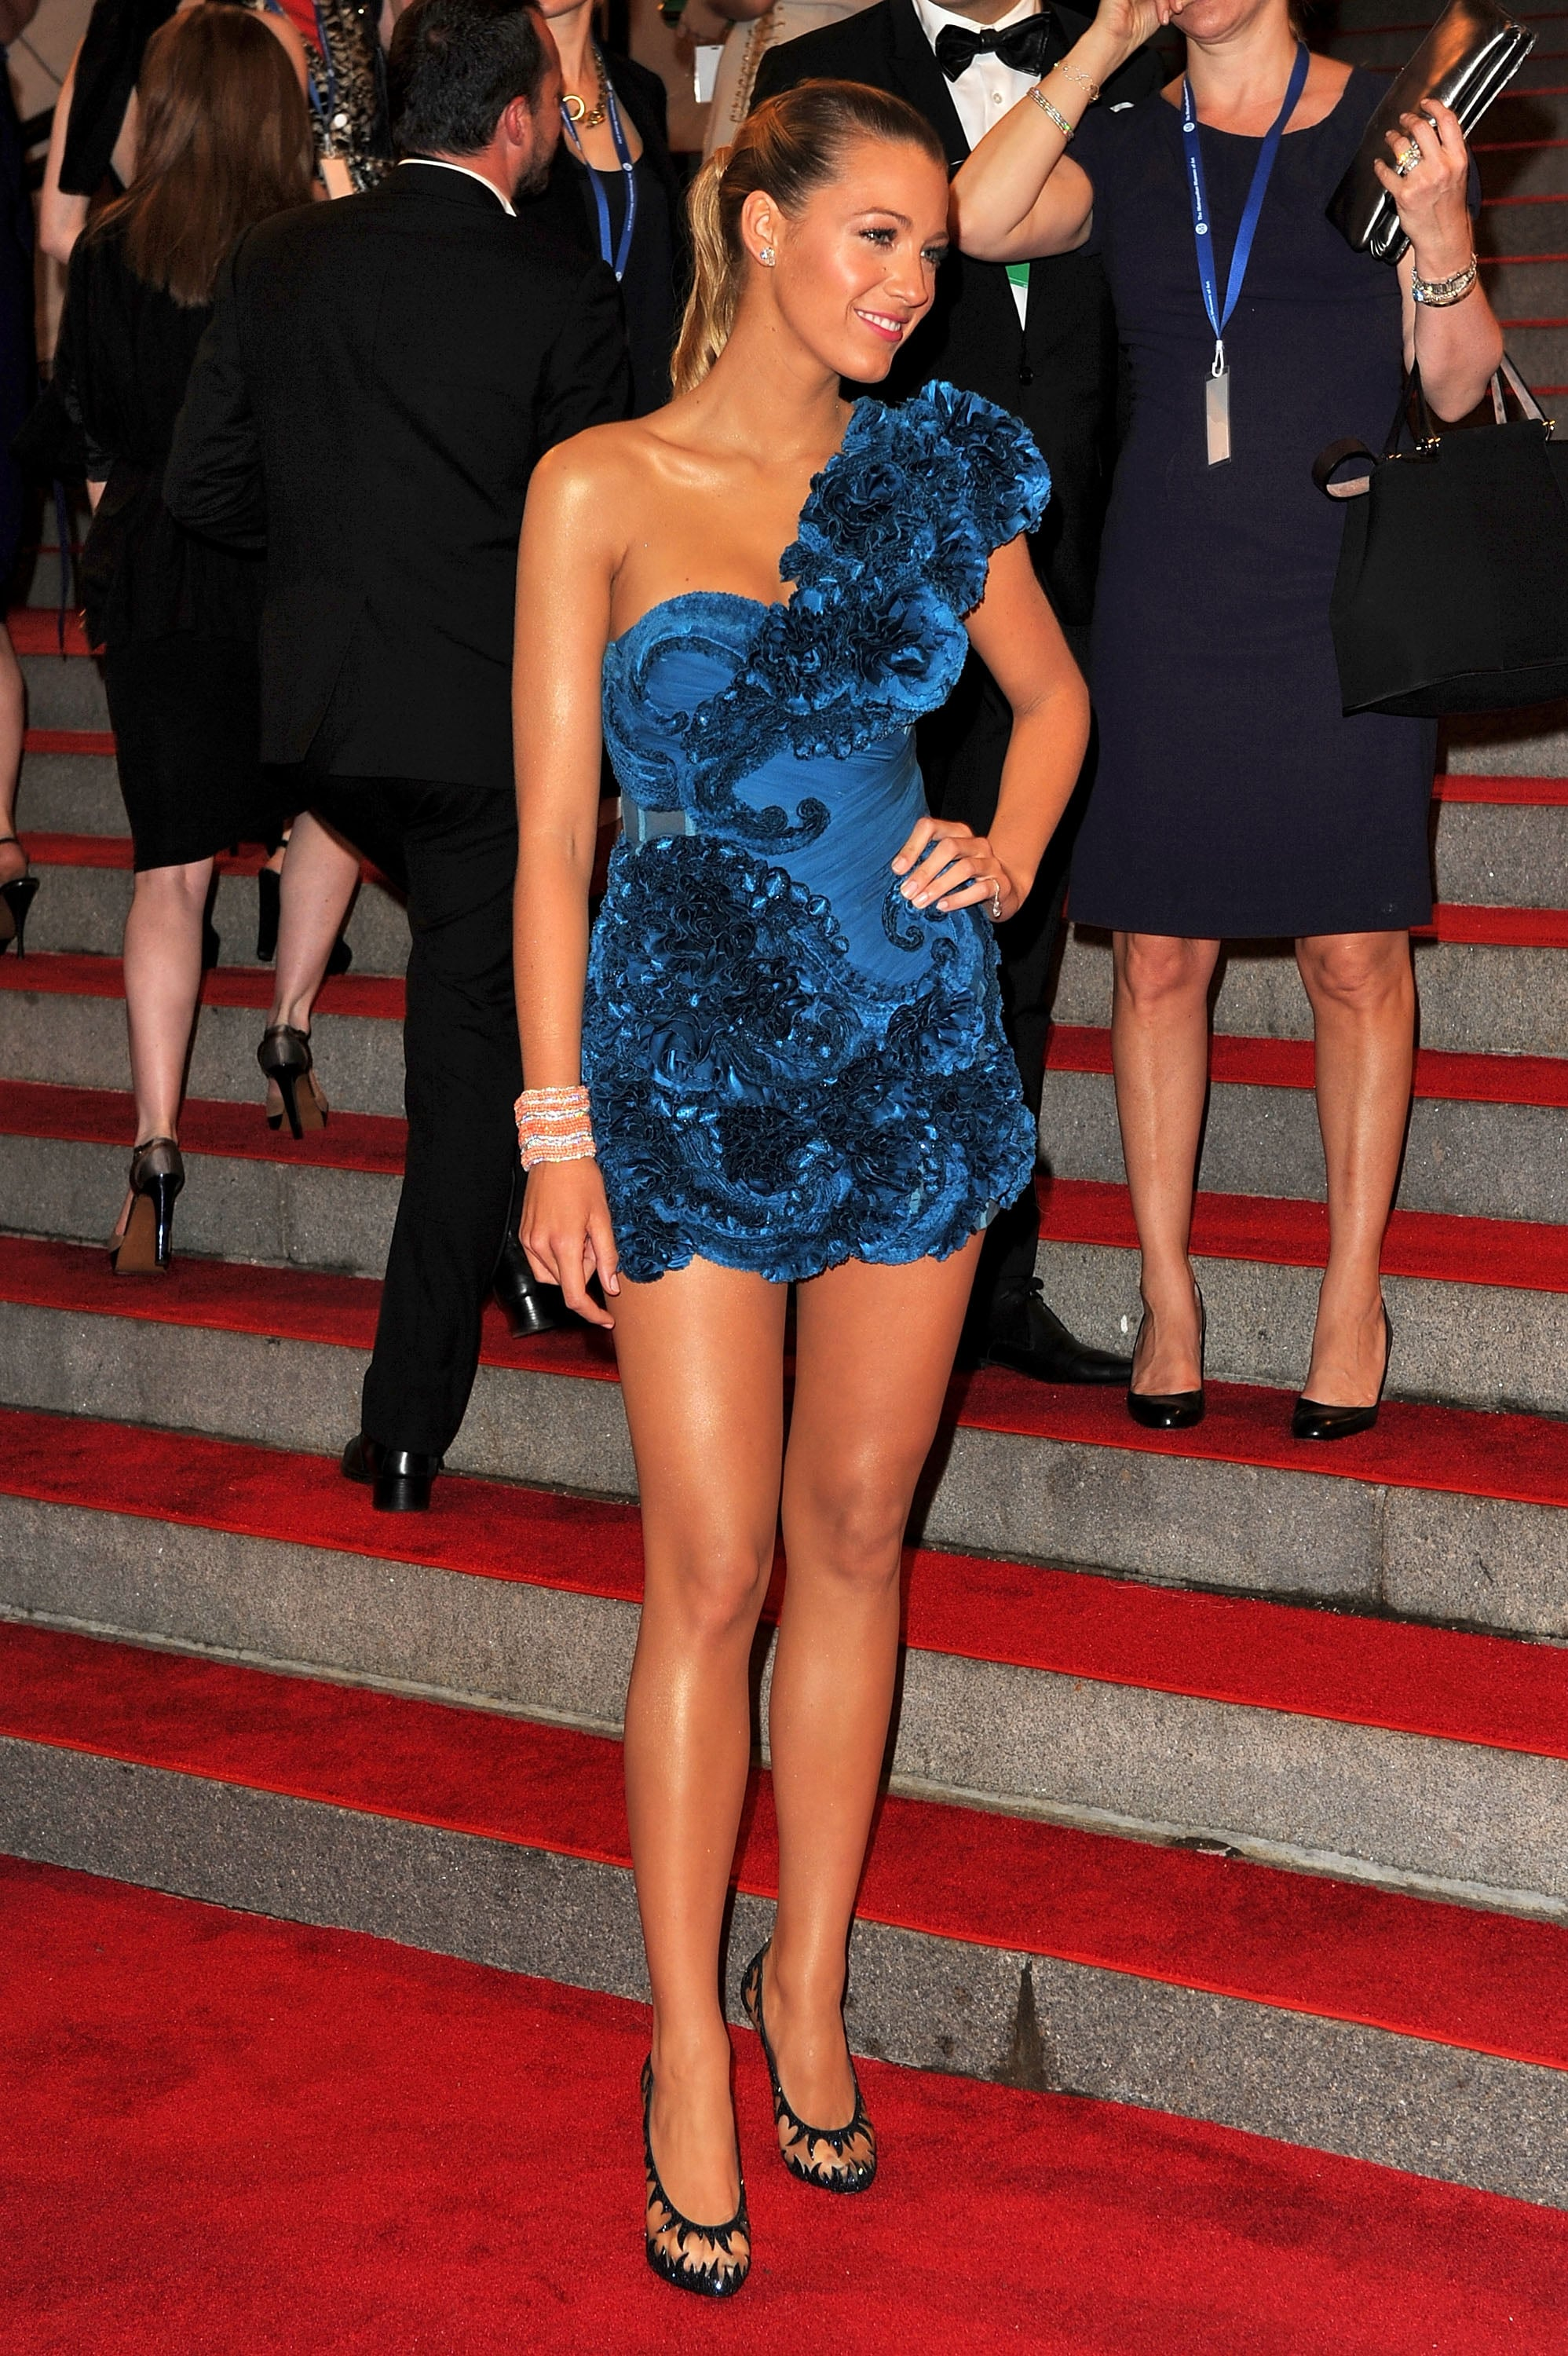 Pictures of Blake Lively at the 2010 Met Costume Institute ... блейк лайвли рост